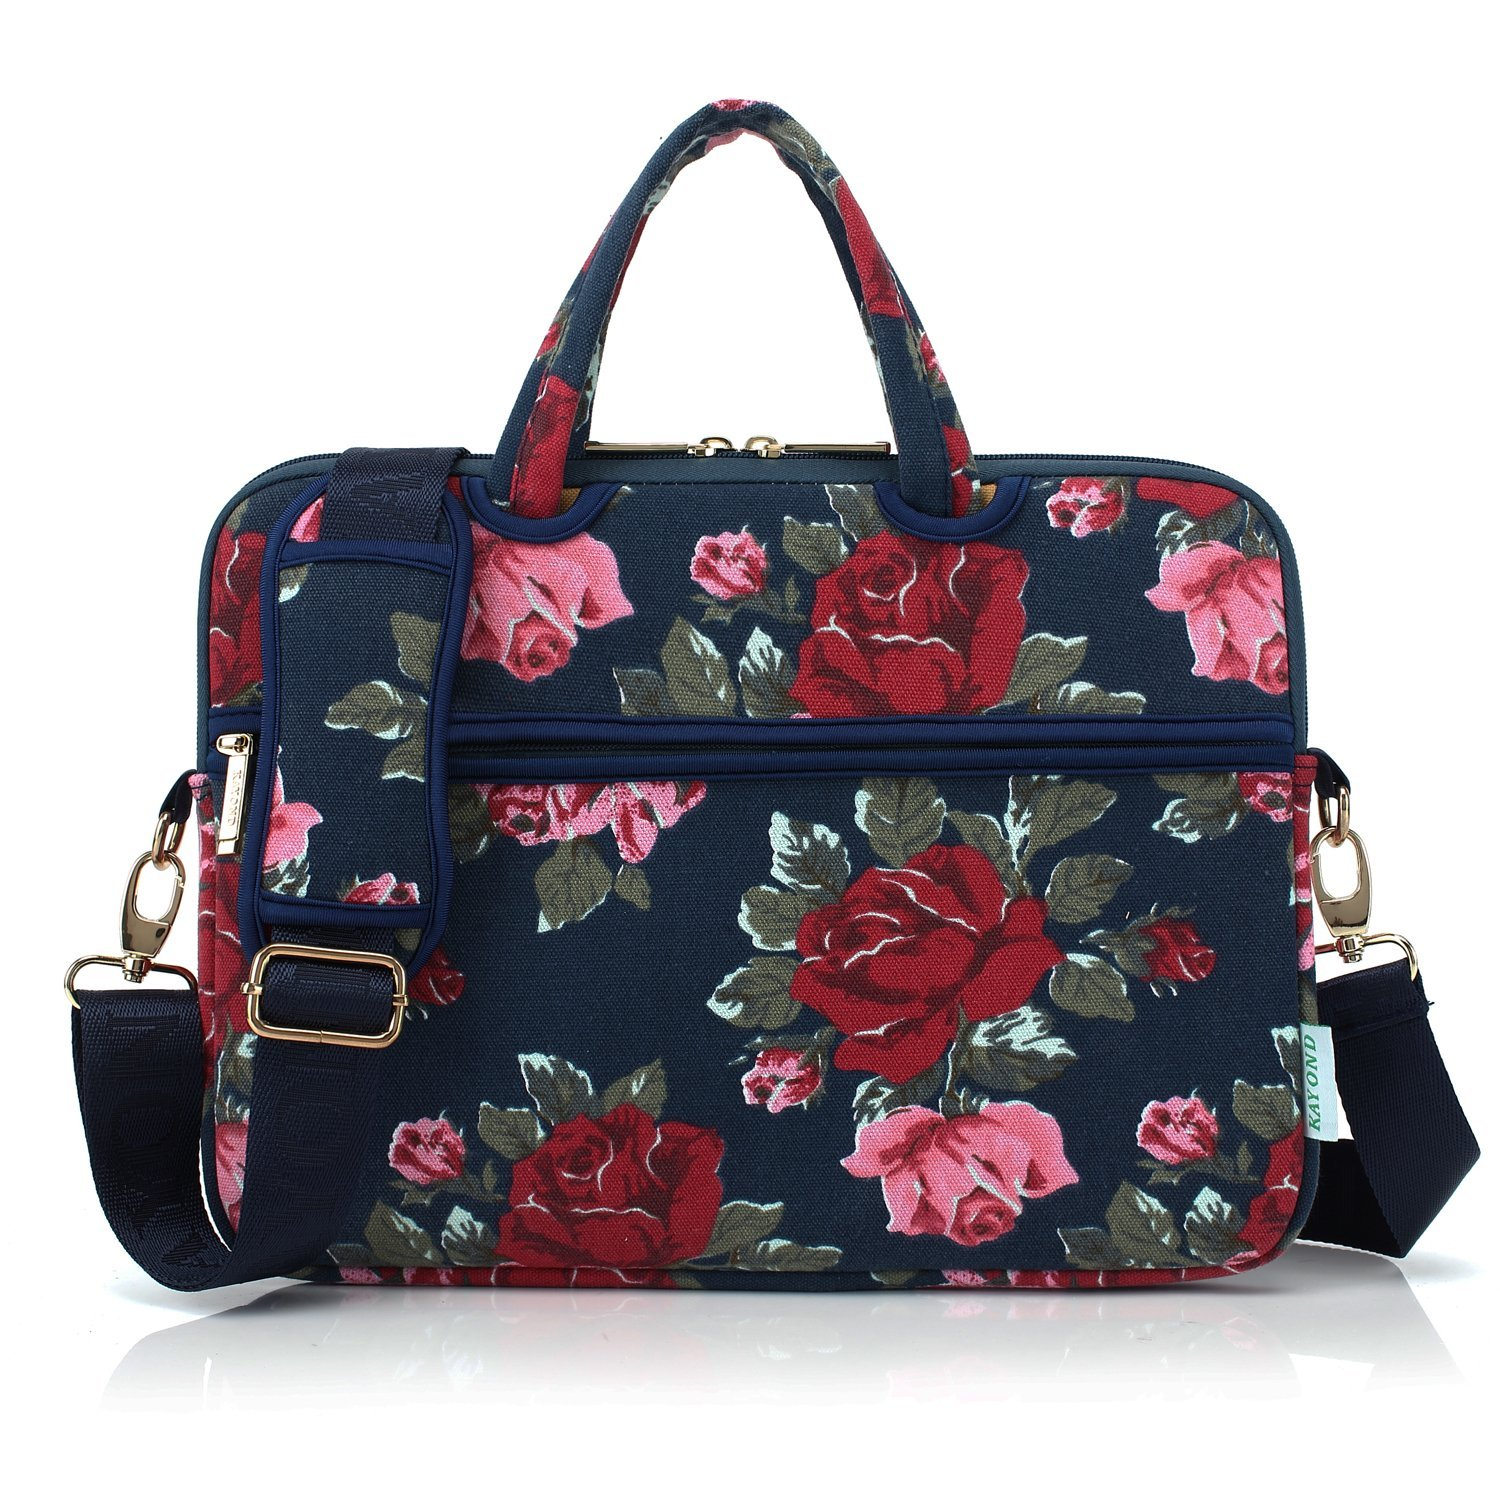 Kayond Canvas Ultraportable Water-Resistant Neoprene Laptop Carrying Case/Shoulder Messenger Bag/Daily Briefcase Work/School/Travel-Compatible MacBook Air Pro 13/ipad 12.9 (Bule Peony)